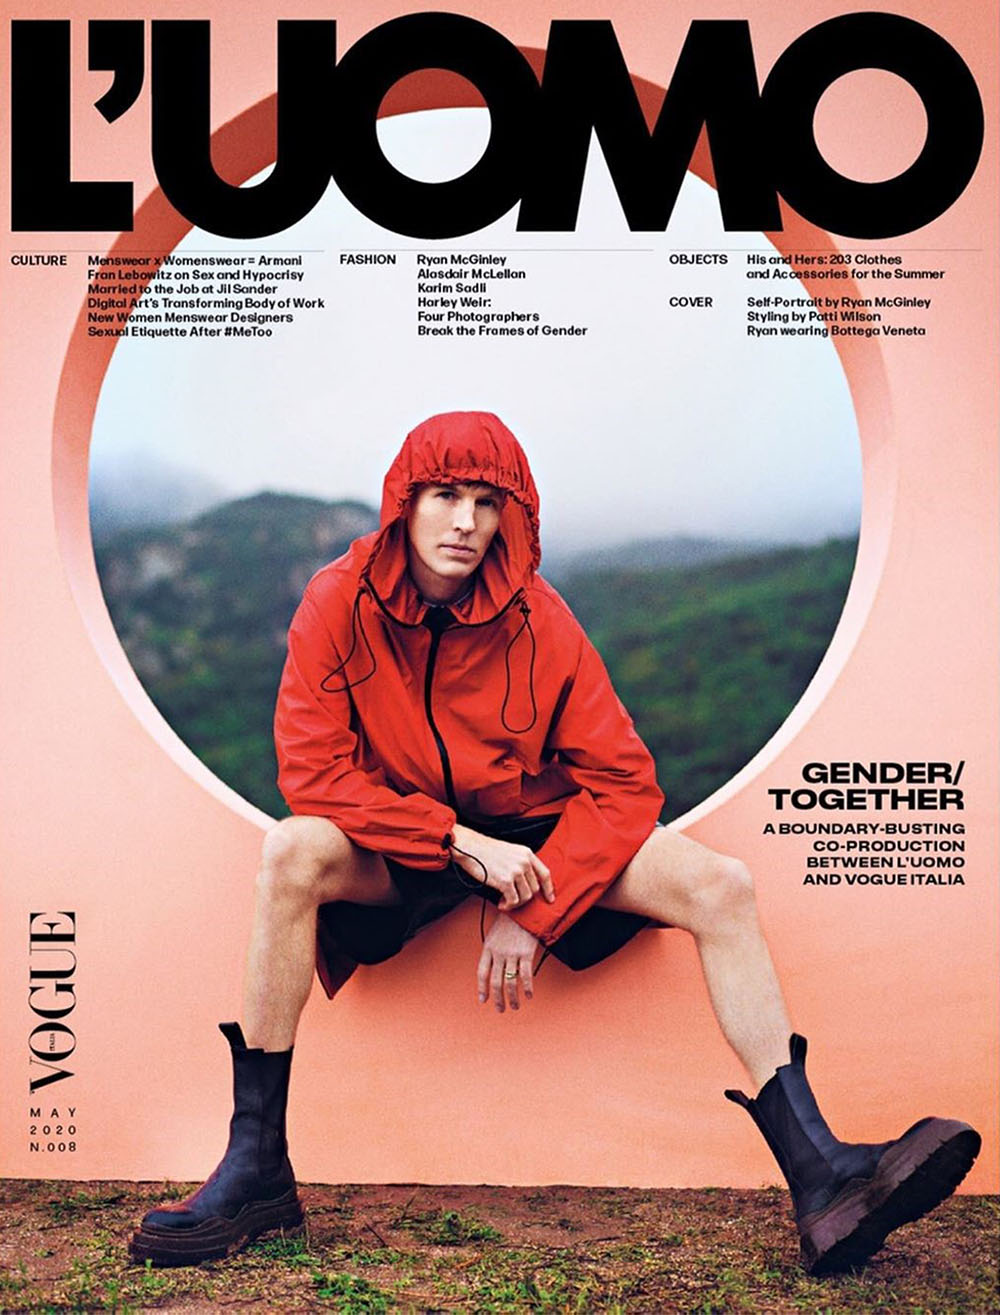 Ryan McGinley covers L'Uomo Vogue May 2020 by Ryan McGinley